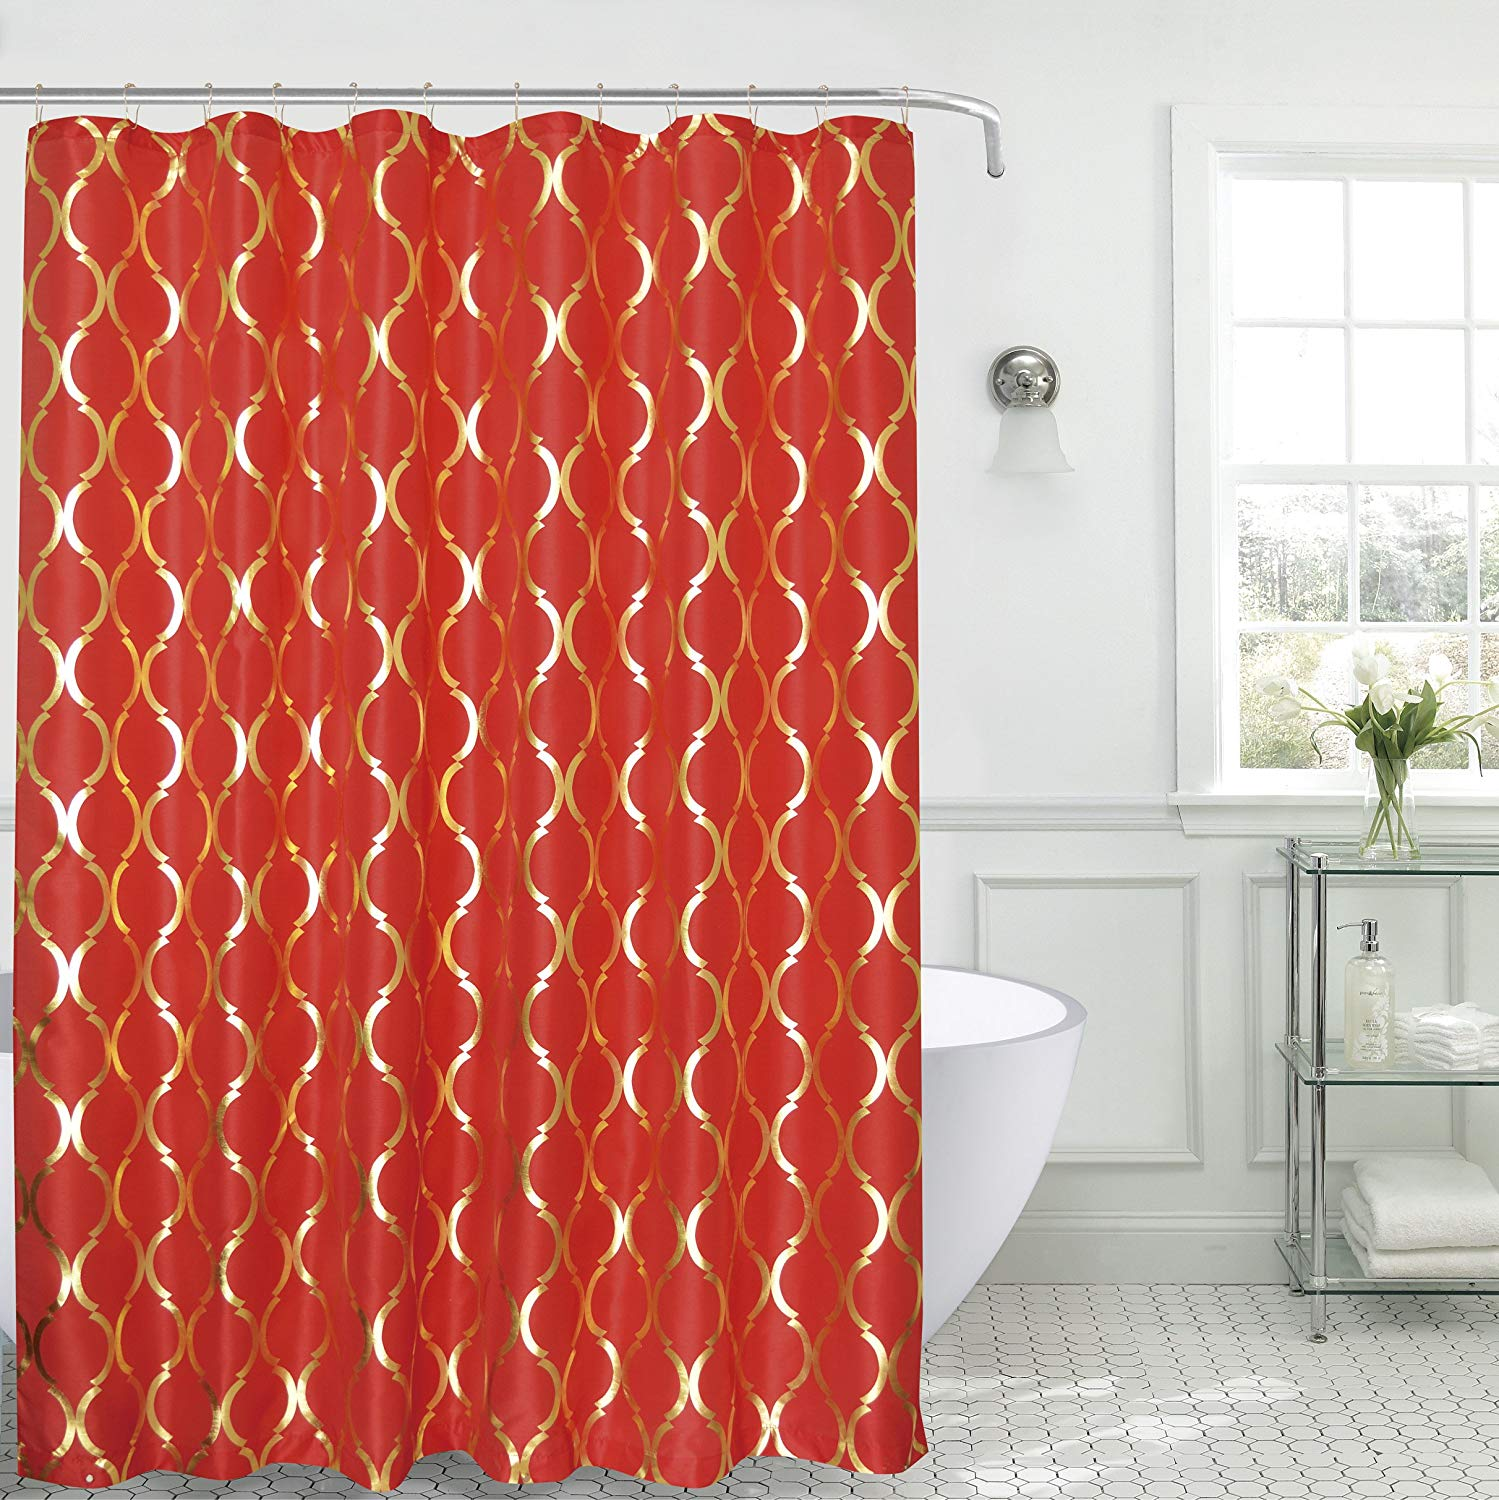 Get Quotations SALLY TEXTILES Regina Shower Curtain Faux Silk Red Gold